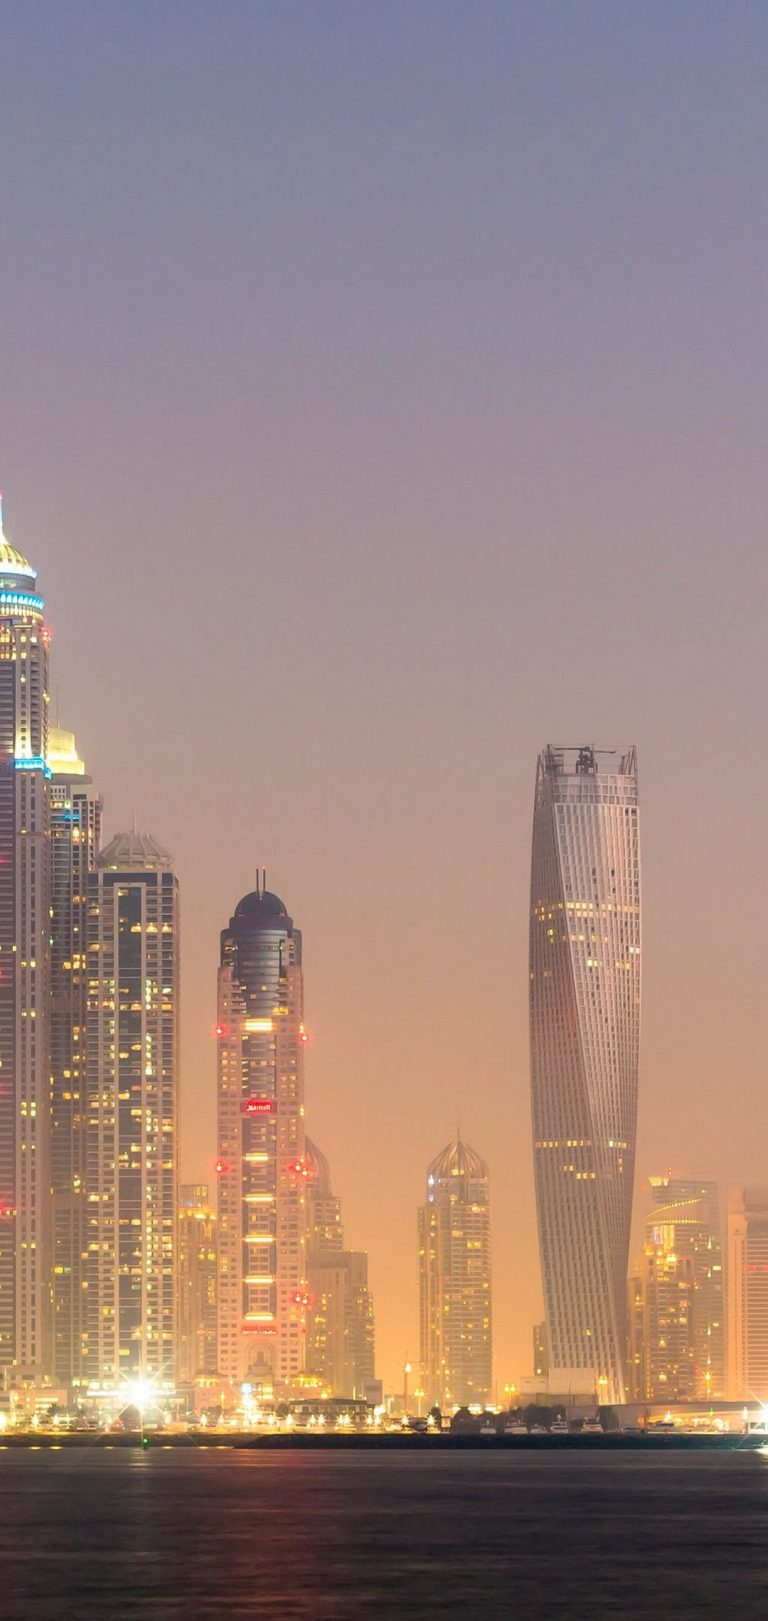 Dubai Lights Wallpaper 1080x2280 768x1621